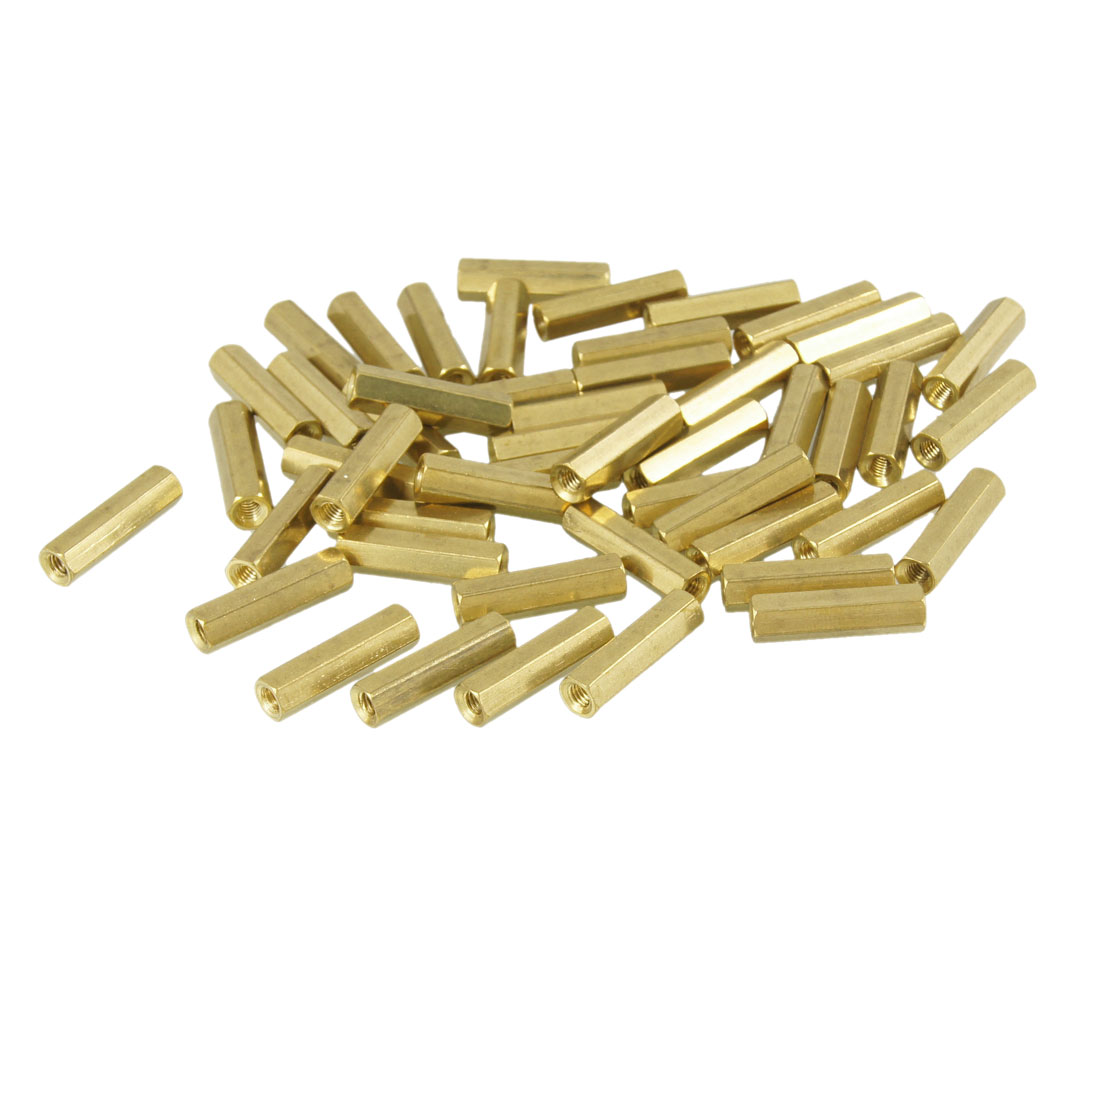 50 Pcs Gold Tone Hexagonal 18mm Long M3 Female Thread Standoff Spacer